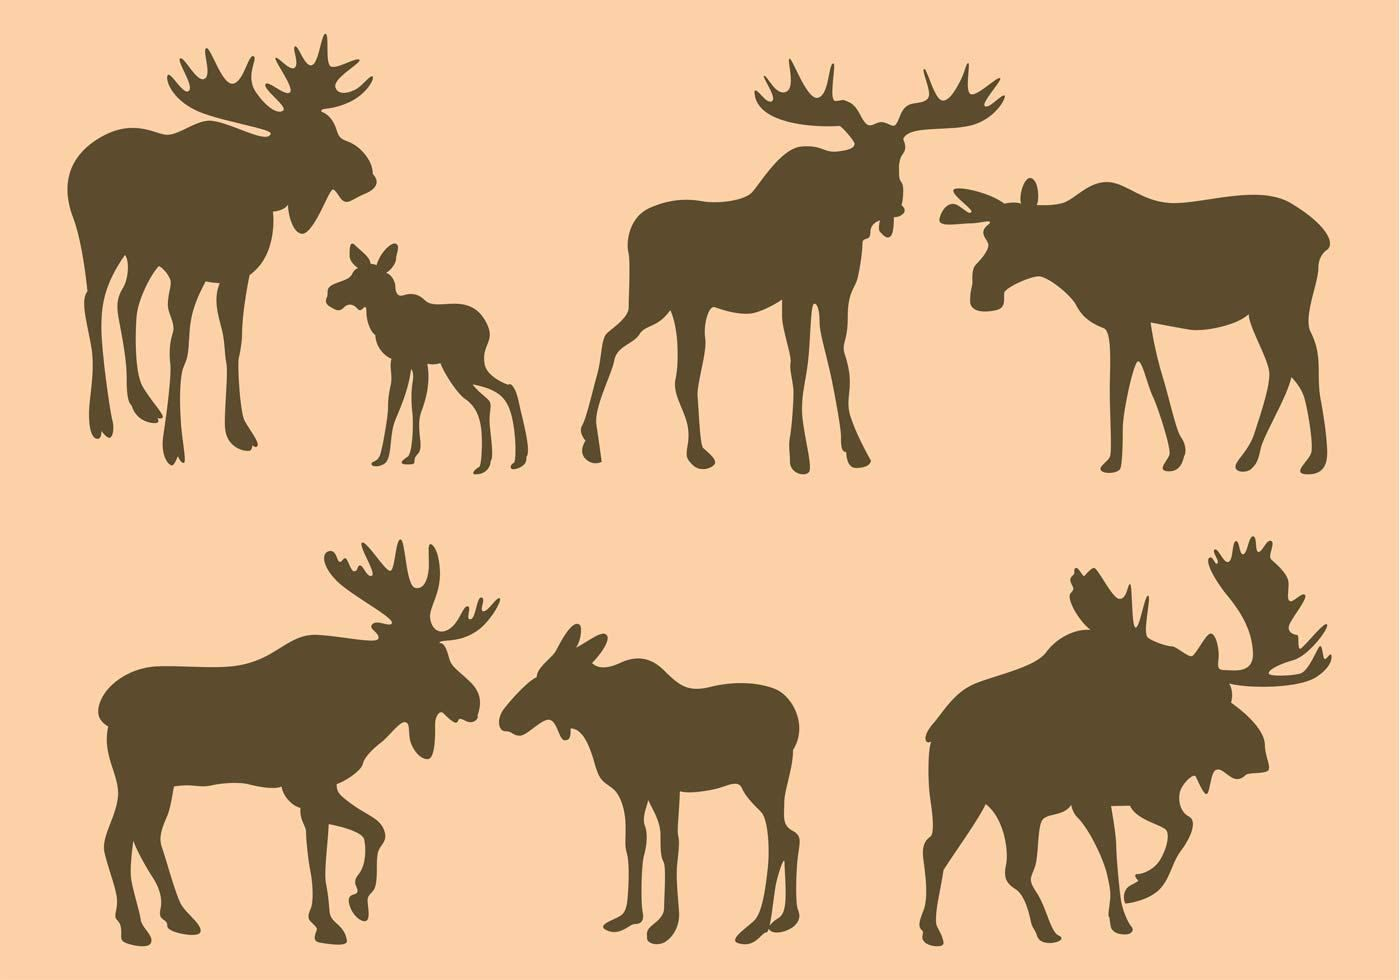 hight resolution of moose silhouette clip art google search graphics pinterest